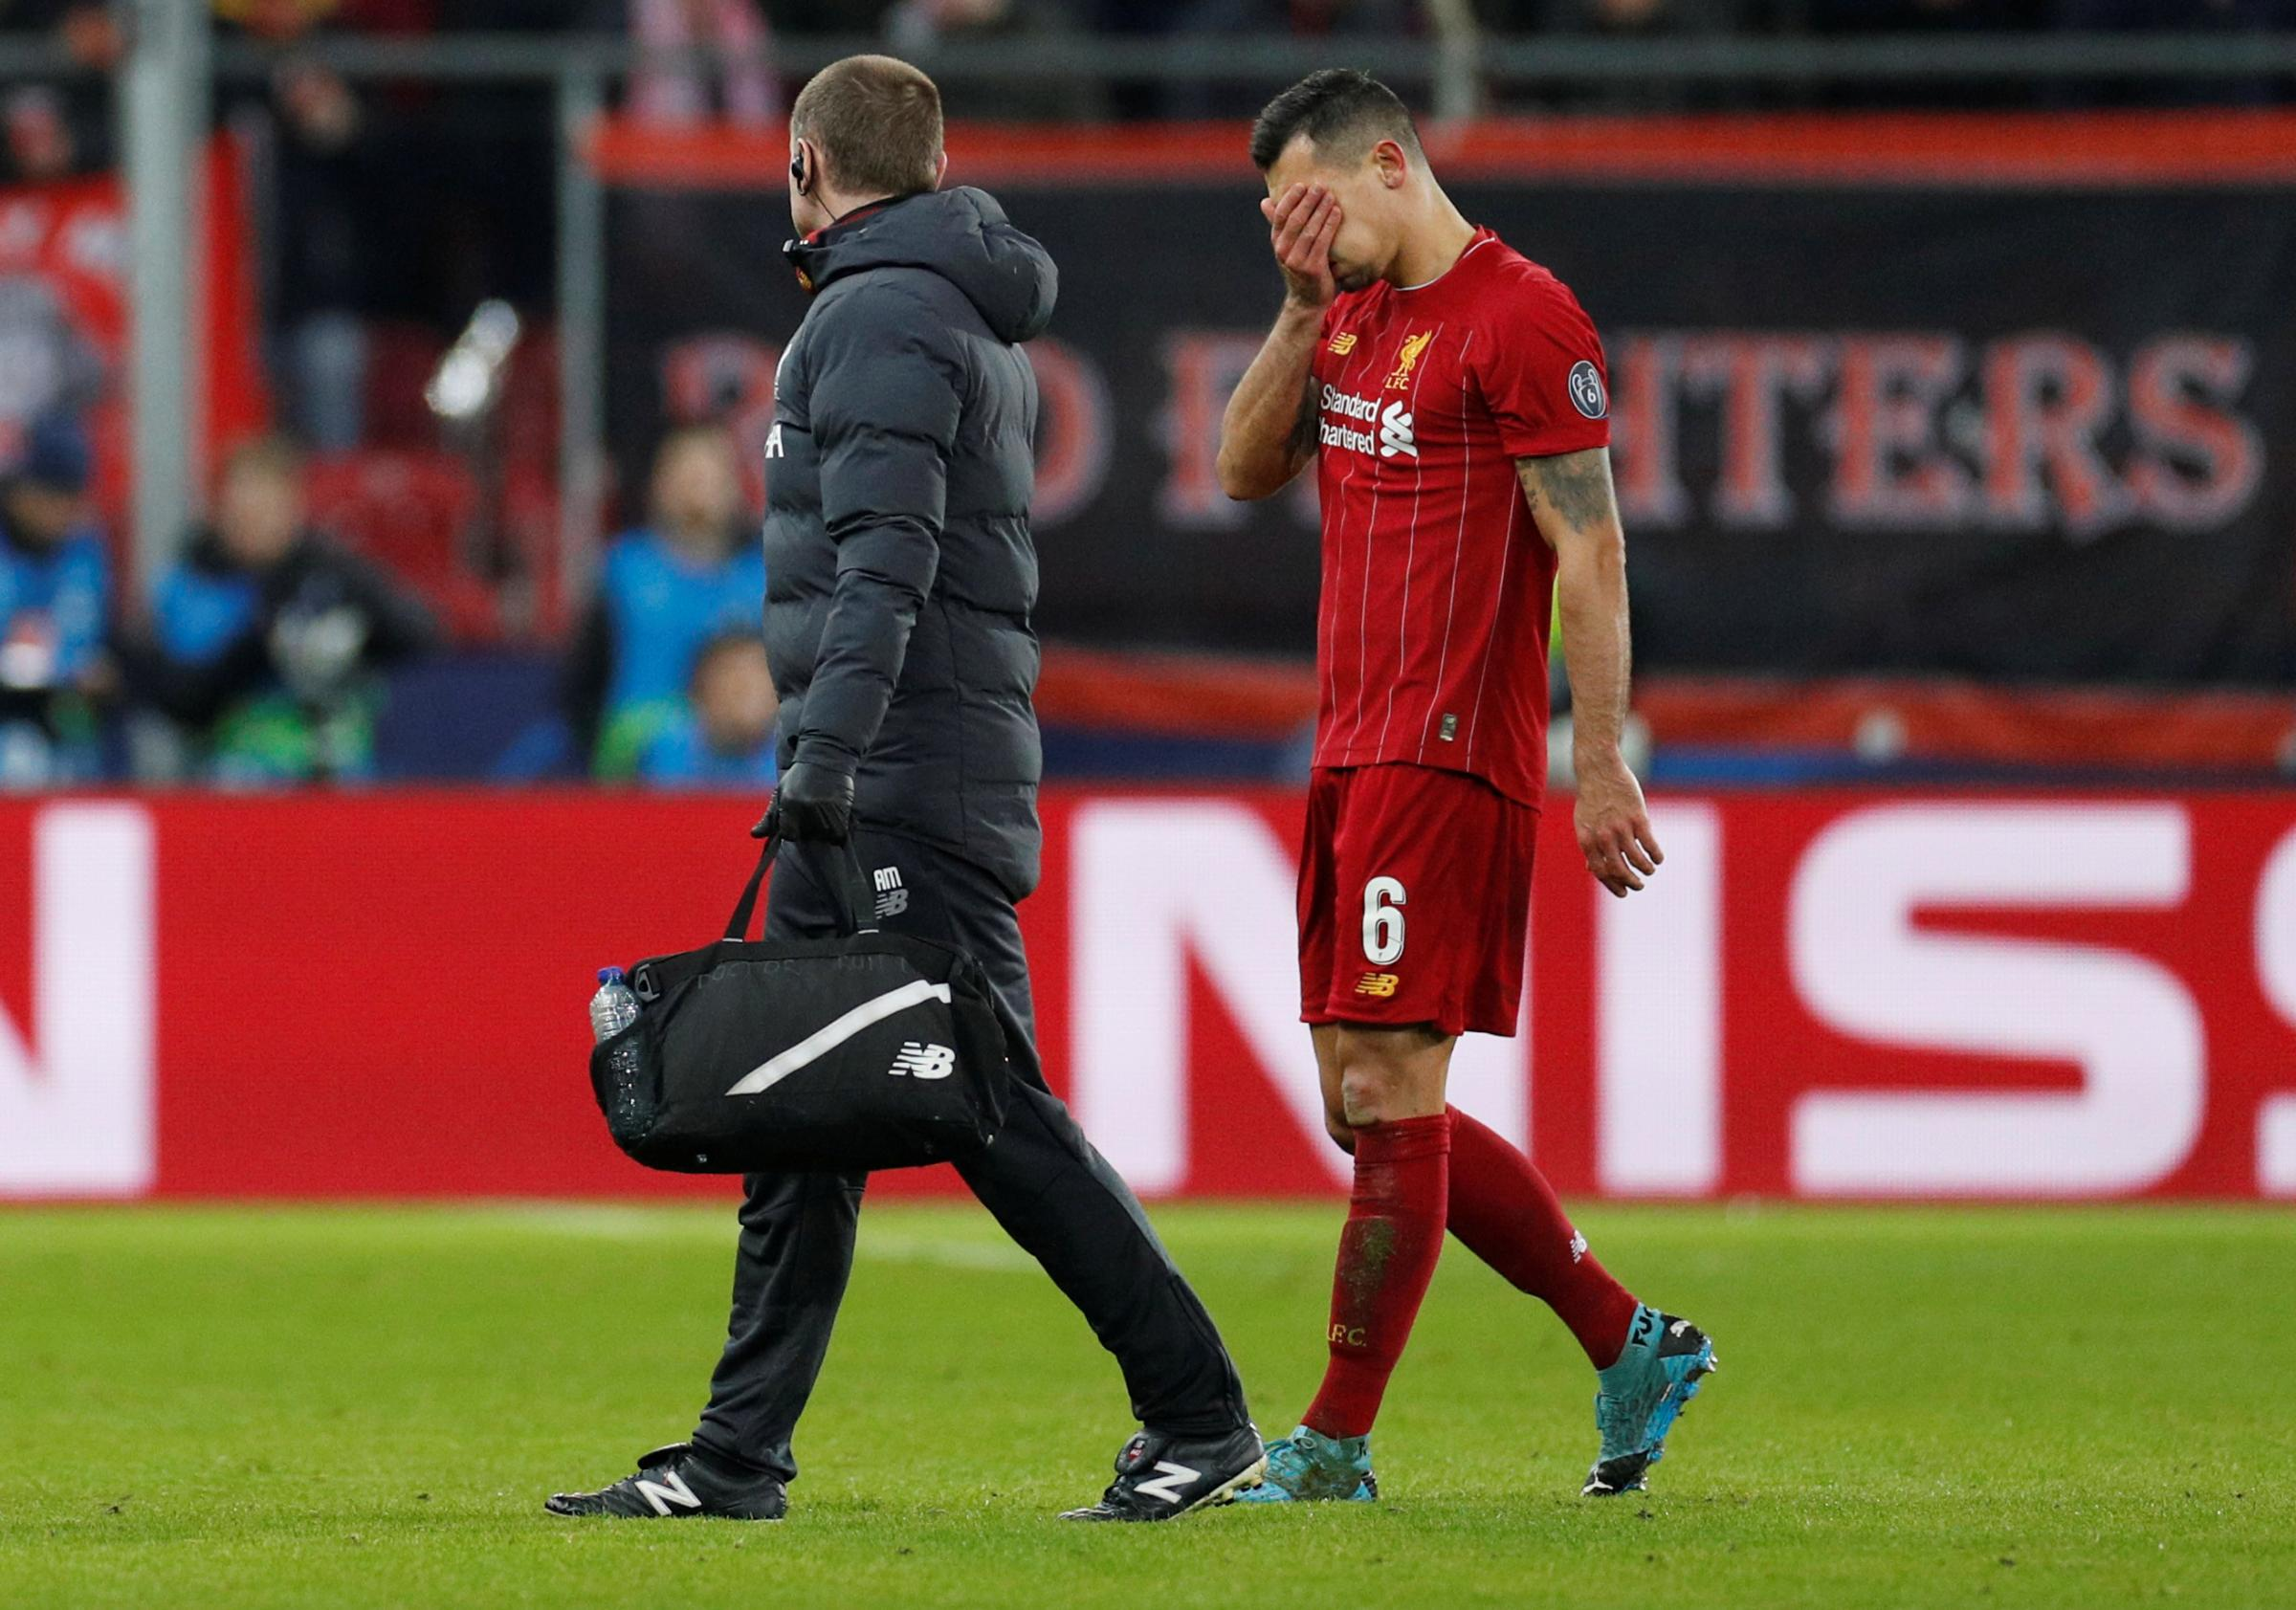 Dejan Lovren to miss Liverpool's clash with Watford due to hamstring injury